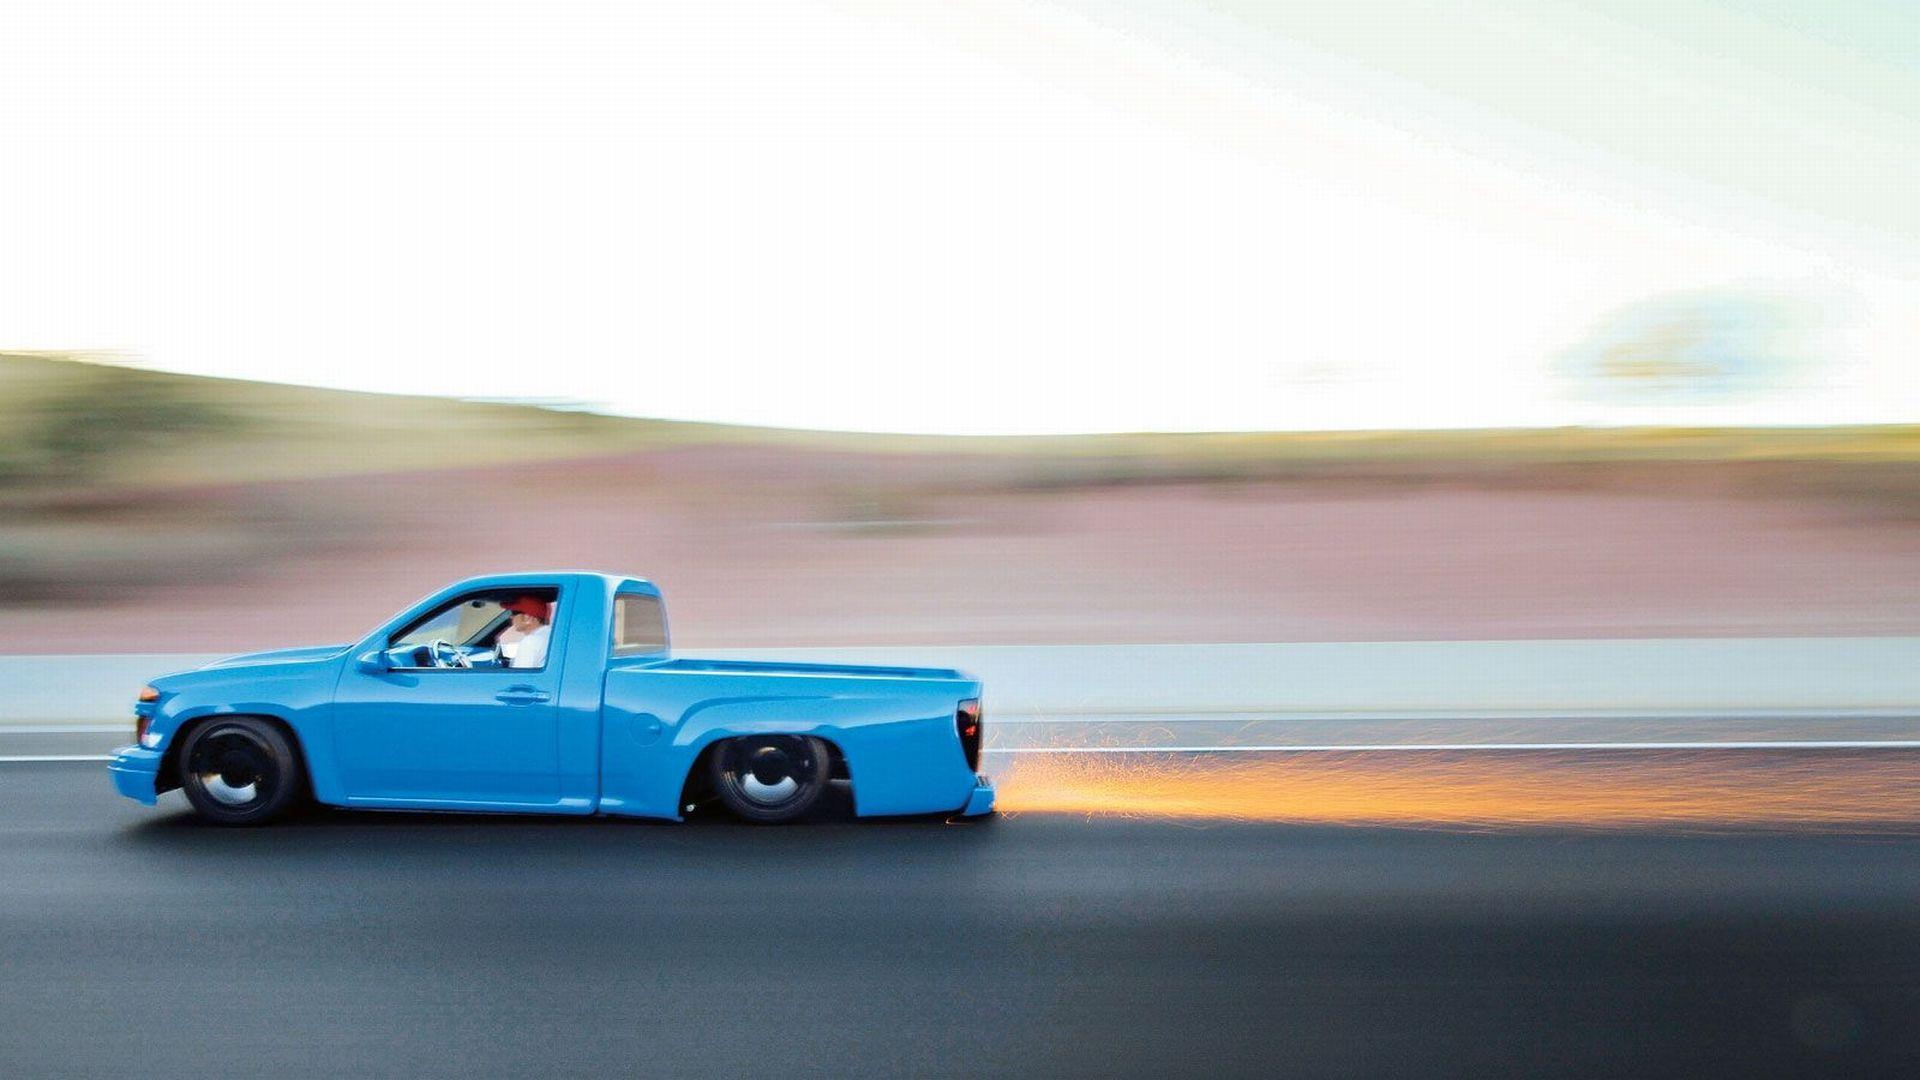 Low Truck Wallpapers   Top Low Truck Backgrounds 1920x1080